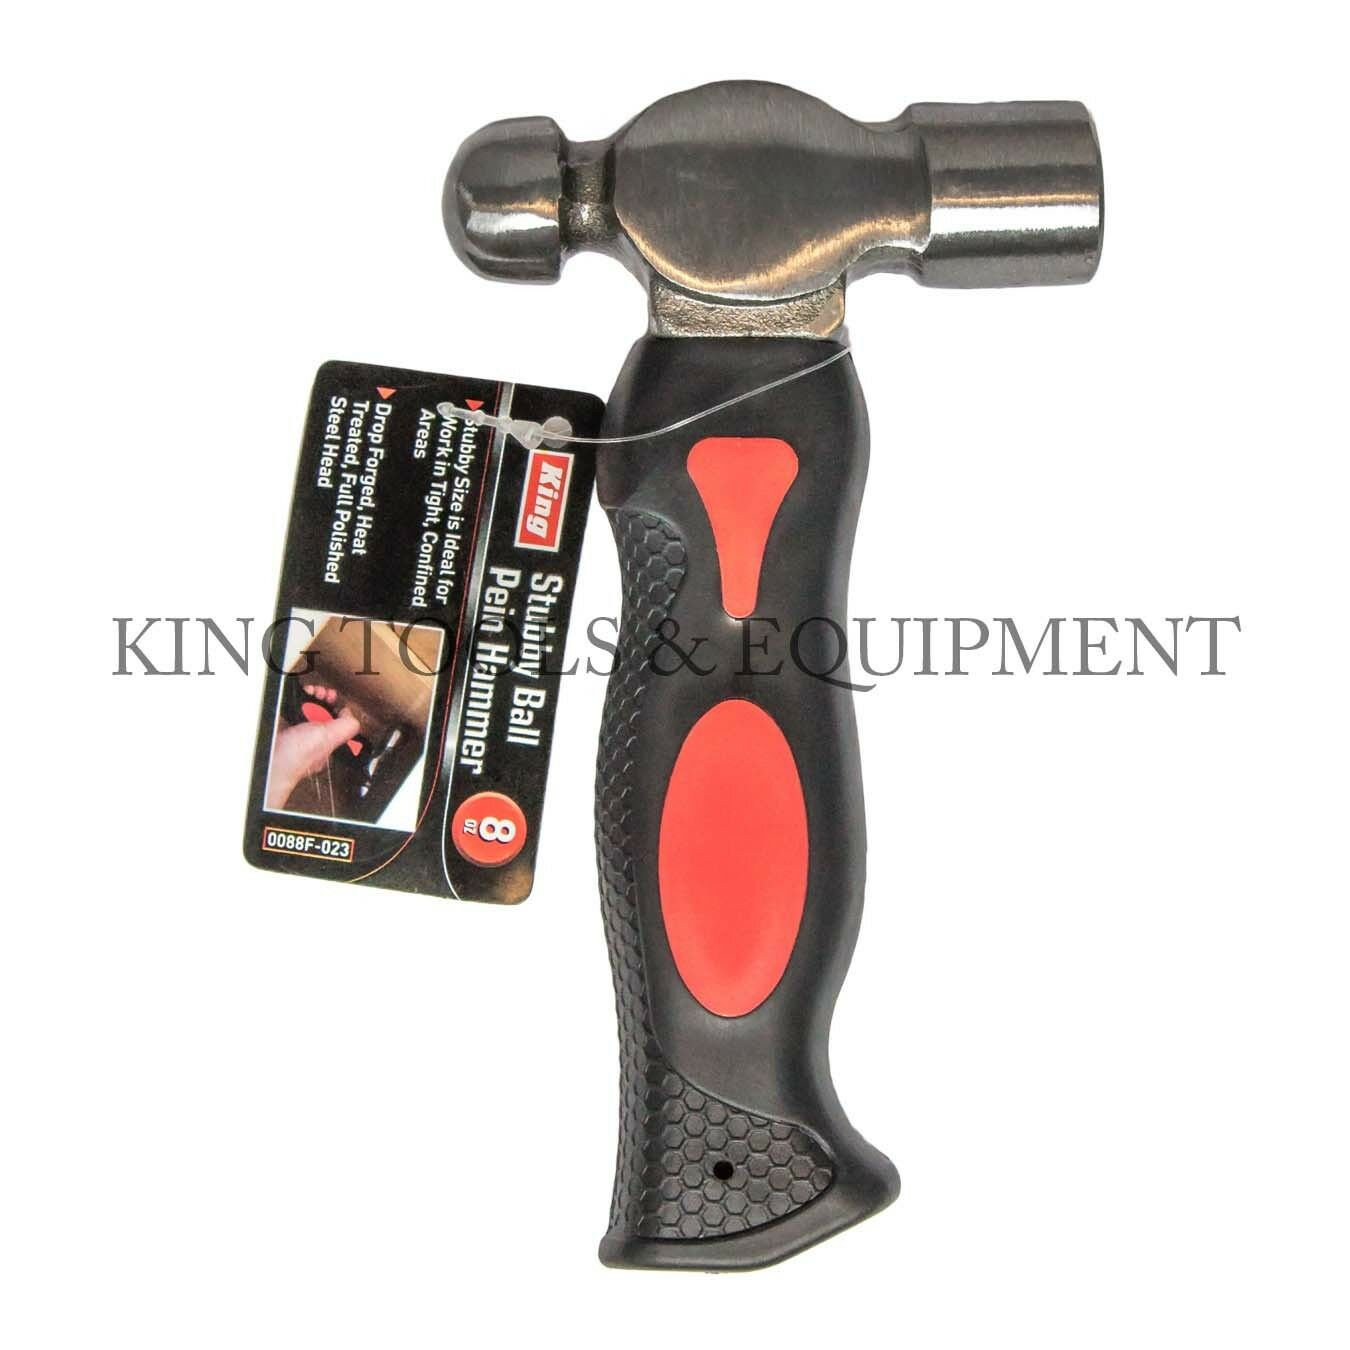 New KING 8 Oz Stubby Ball Pein Hammer, Small Peening Hammer For Metalworking